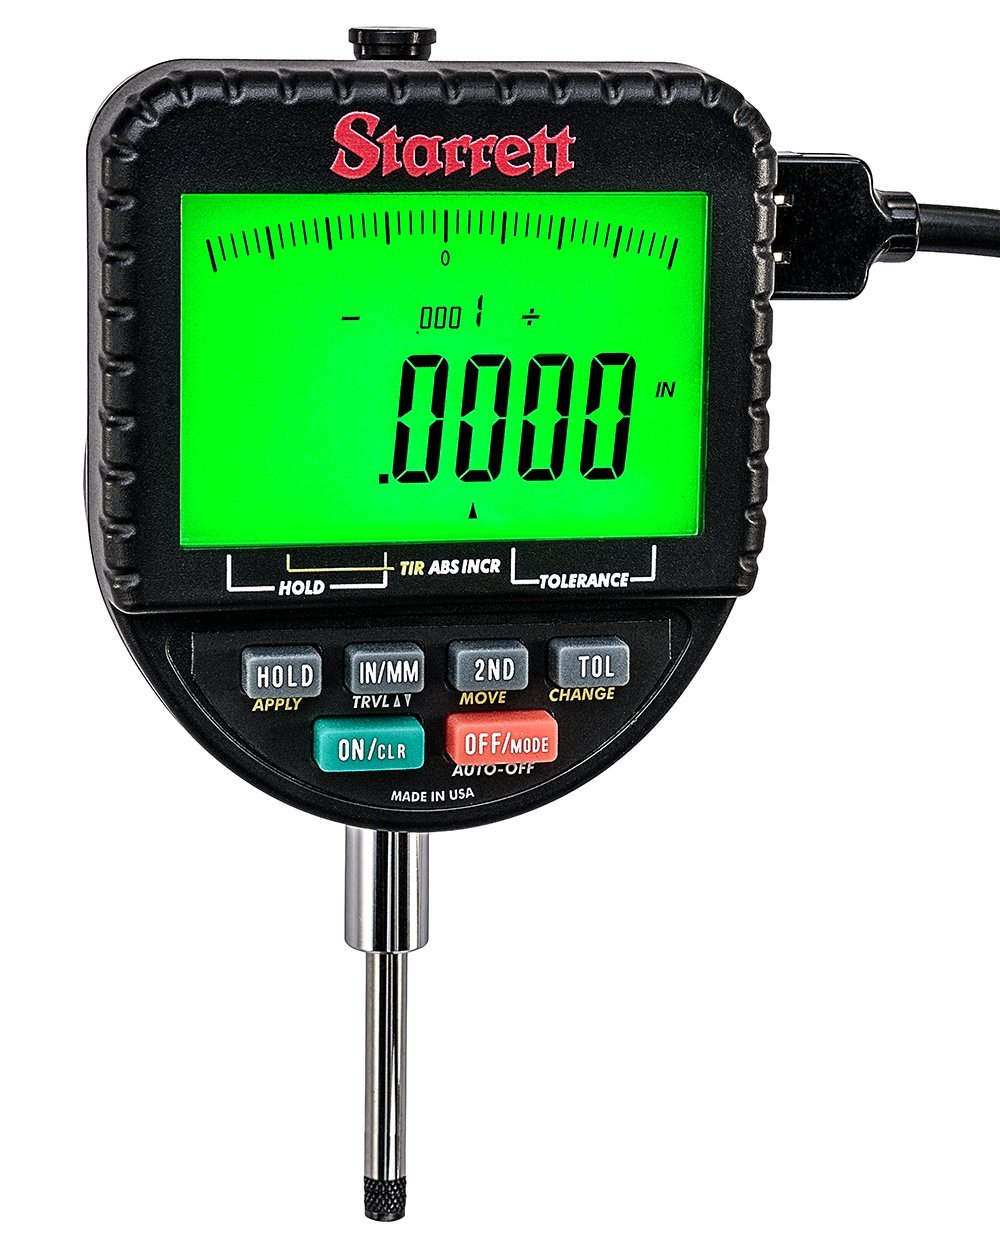 Starrett 2700-800 Backlight Tampa Mall Electronic Indicator R with Deluxe 1